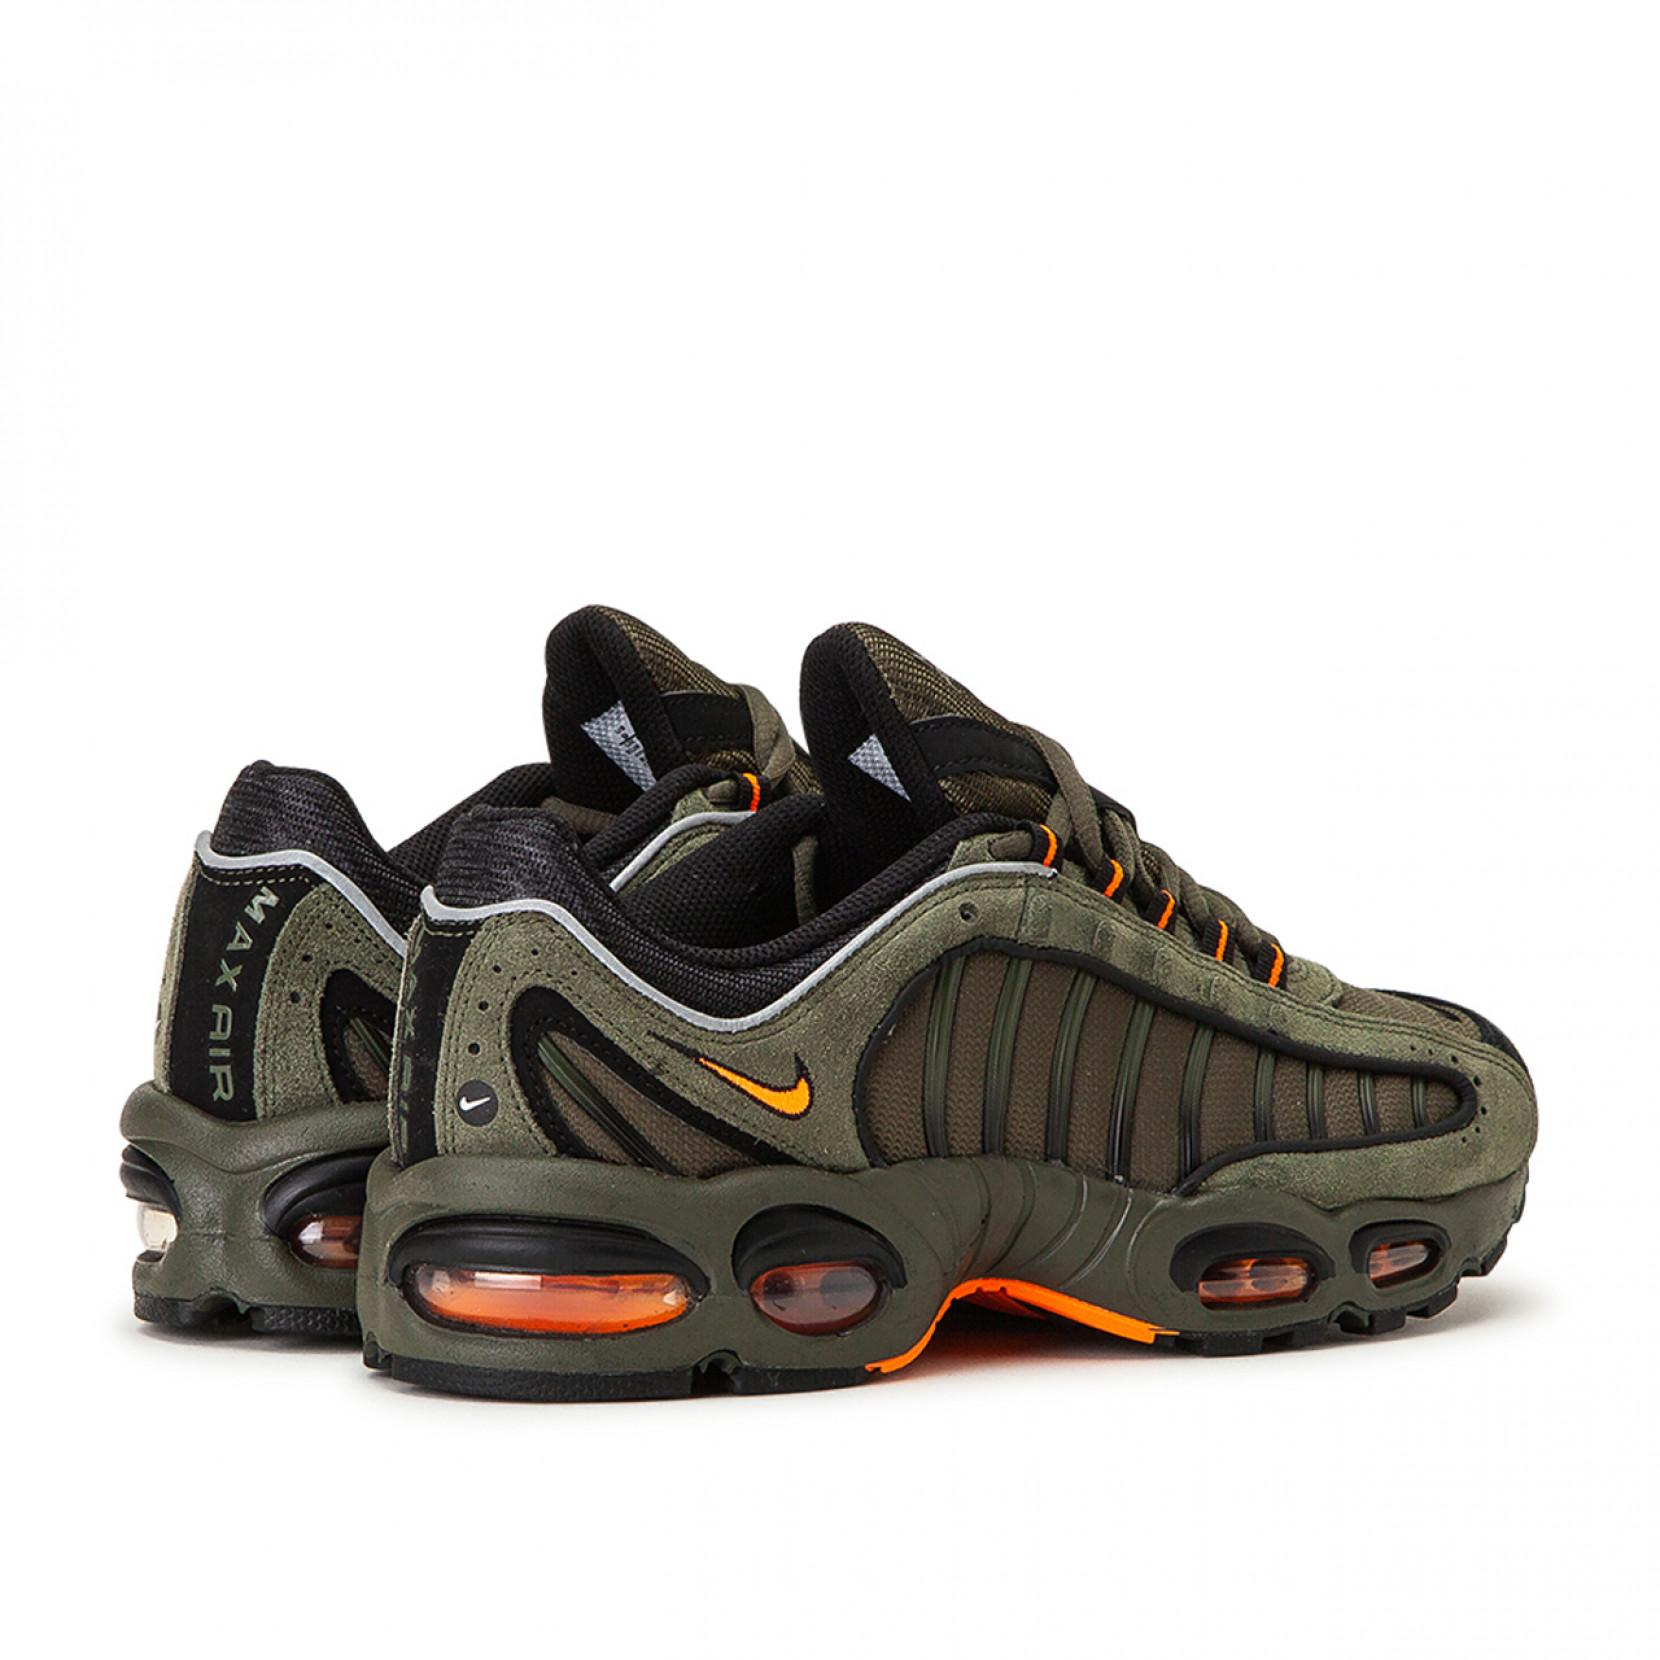 Nike Suede Air Max Tailwind Iv Se in Olive (Green) for Men - Lyst